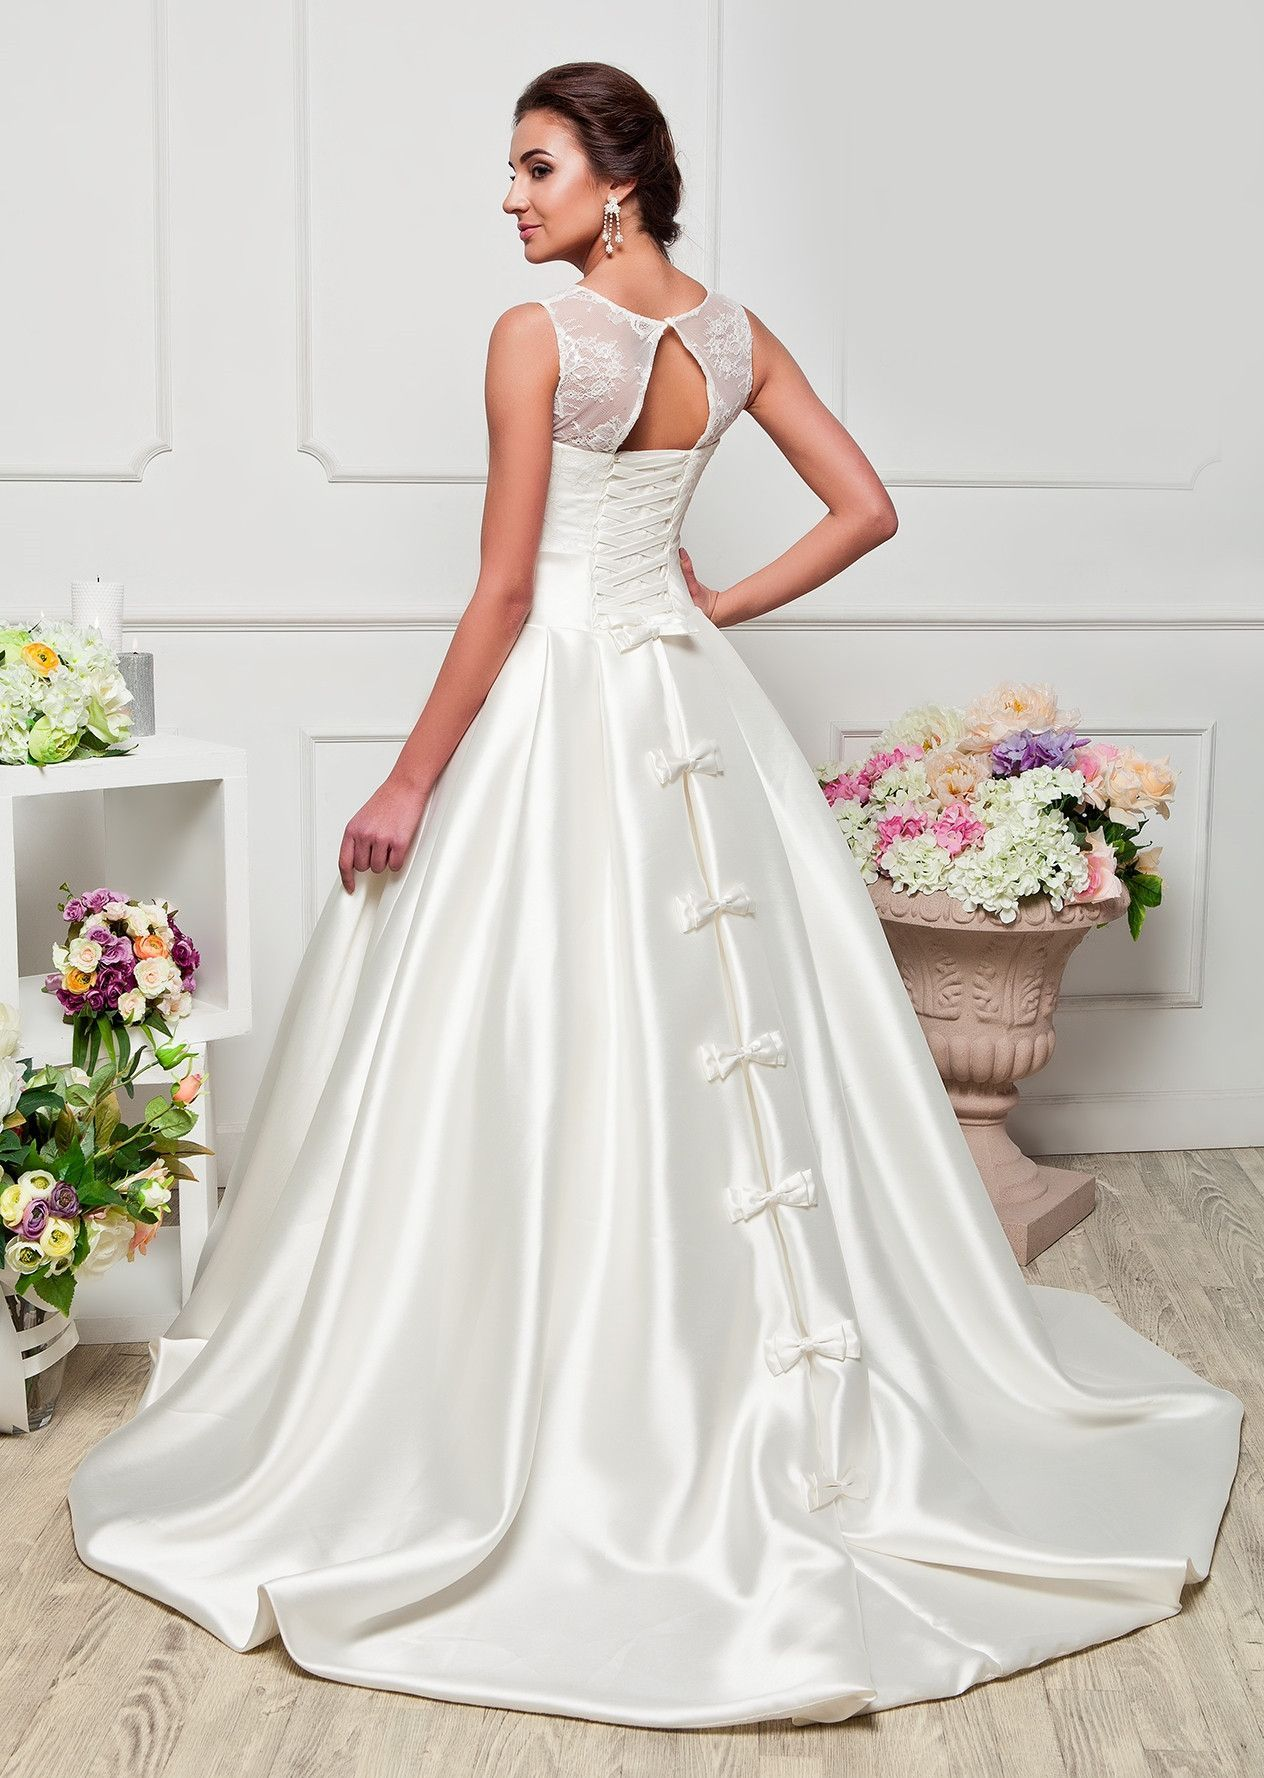 Wedding dresses ball gown lace  Satin Wedding Dress Long Ball Gown  my wedding dress  Pinterest